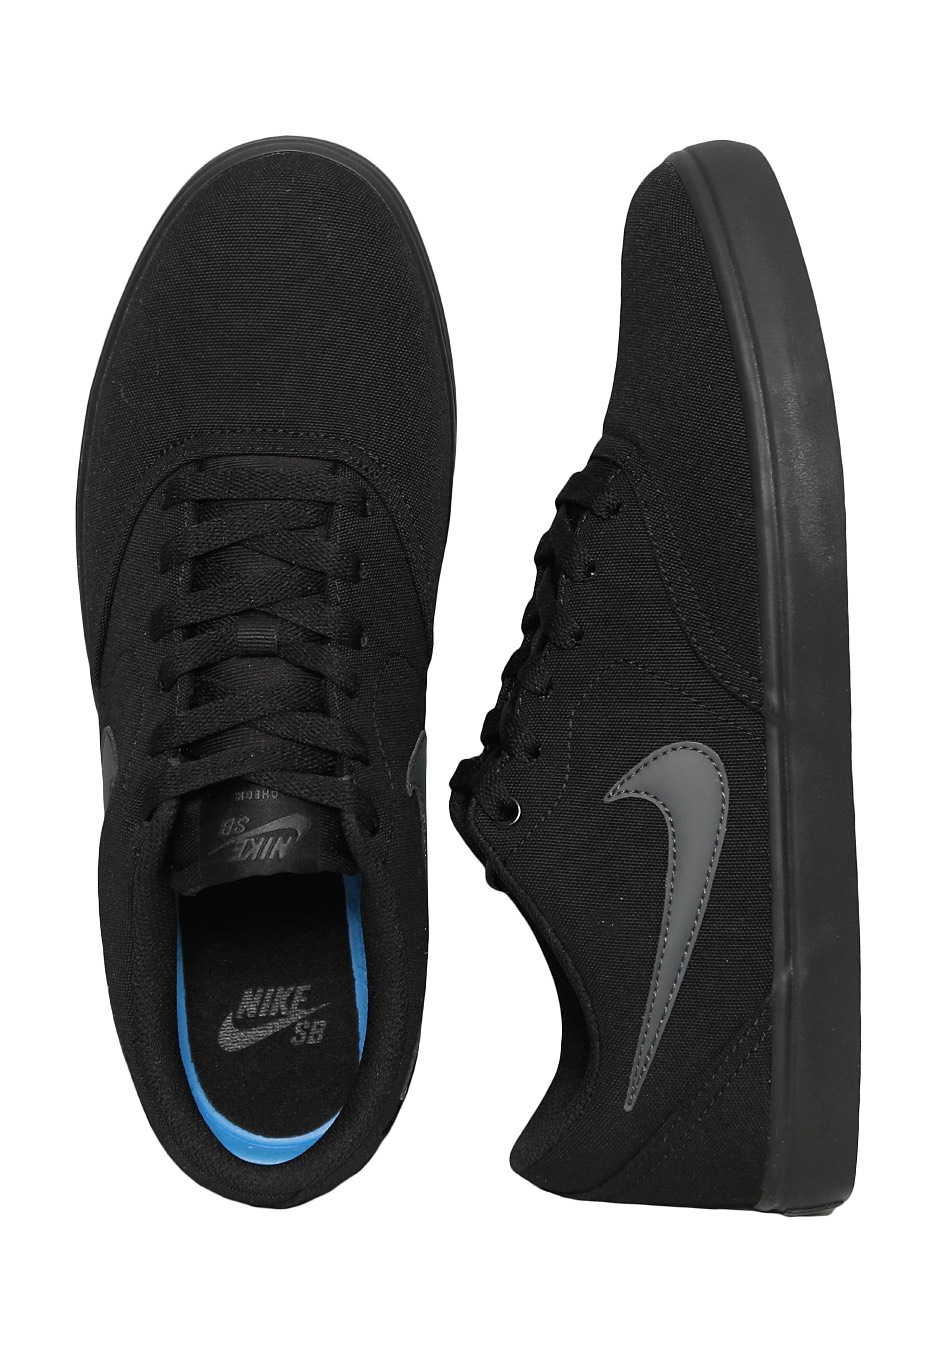 Nike Sb Check Solarsoft Canvas Black Anthracite Shoes